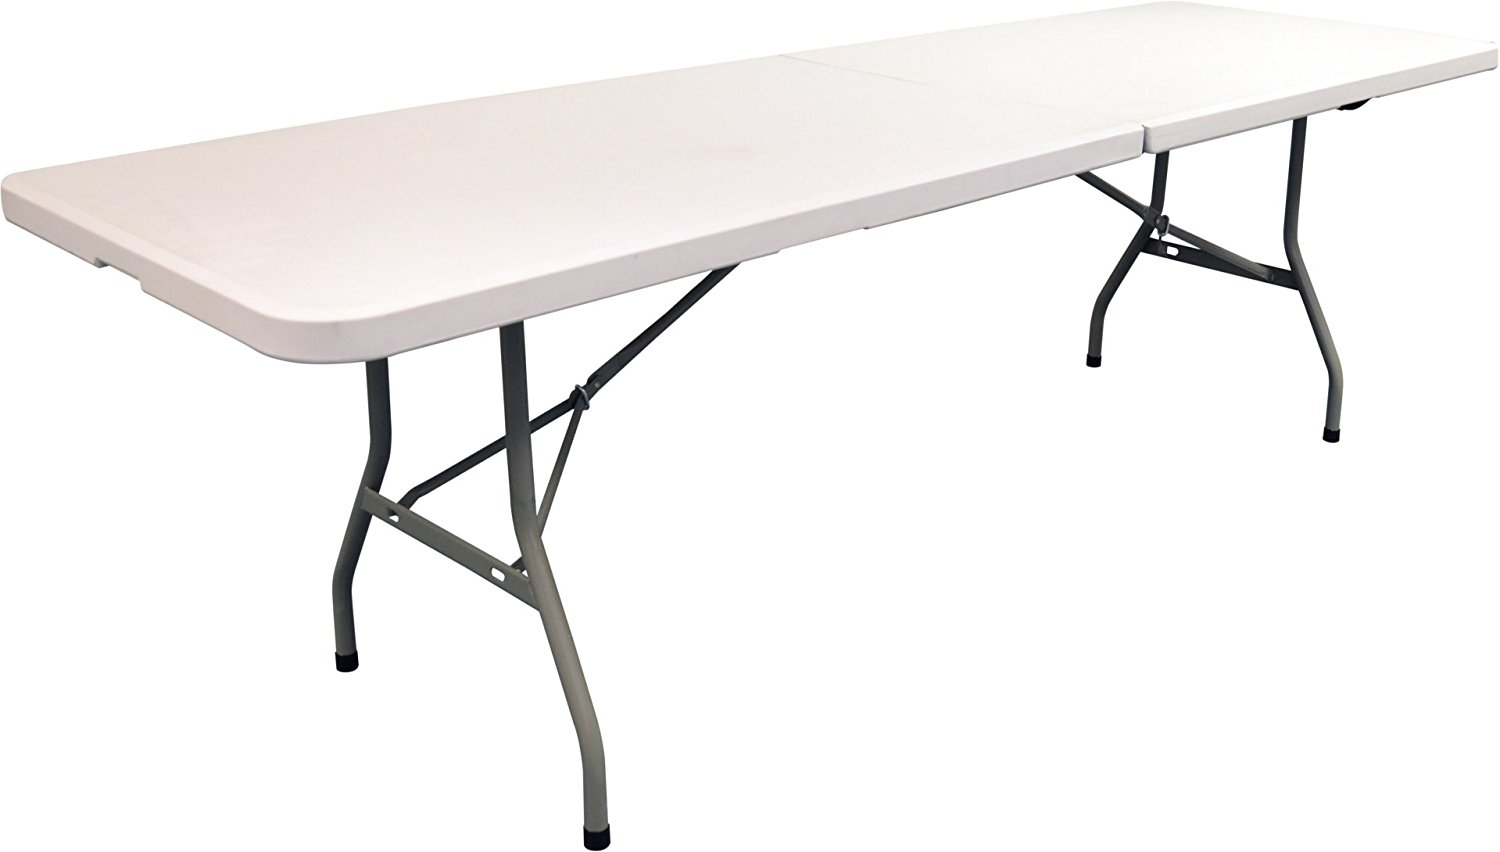 48 Round Folding Table Costco | Folding Tables at Costco | Costco Folding Tables